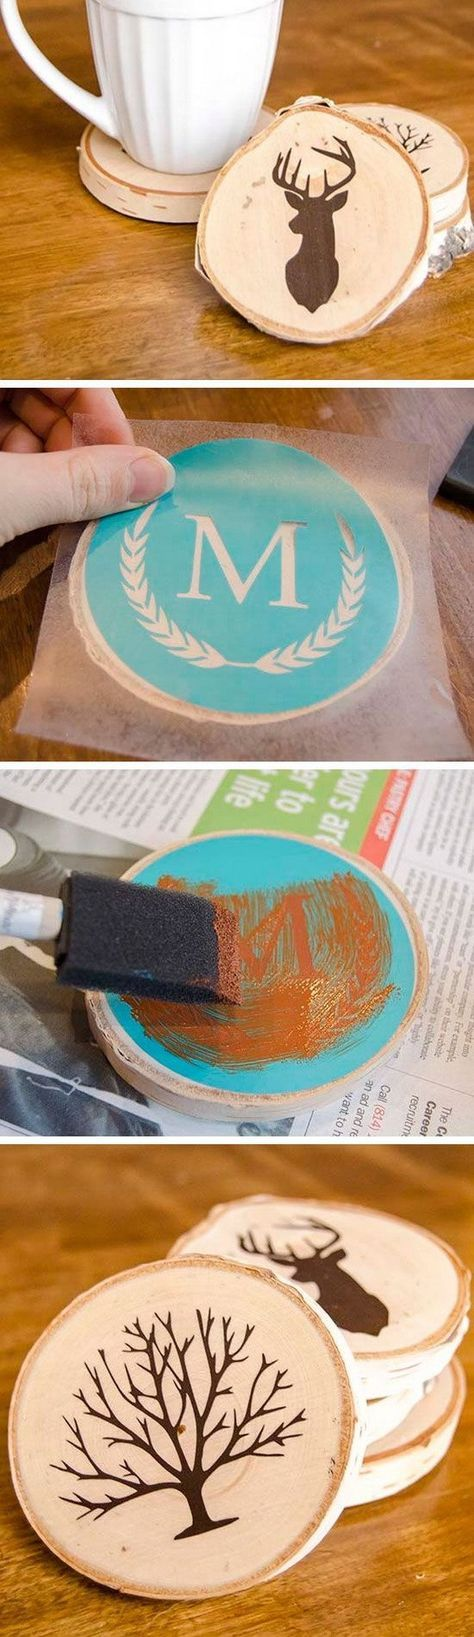 DIY Painted Wood Slice Coasters. Rustic, hand stenciled DIY painted wood slice coasters---A great gift idea for guys.